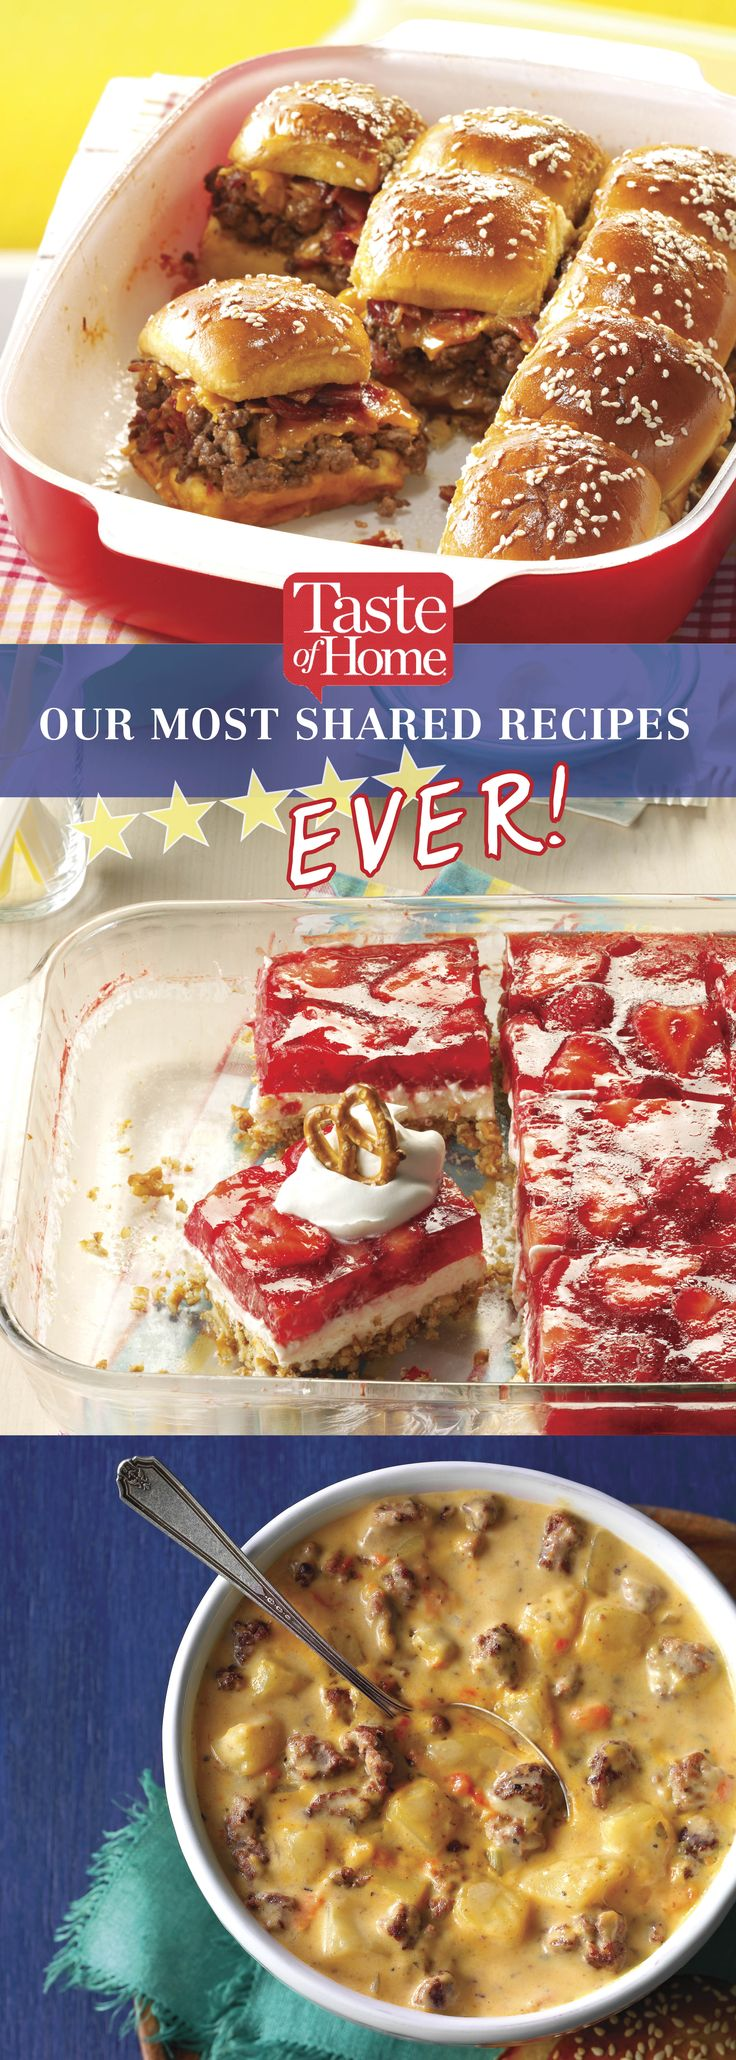 Our Most-Shared Recipes Ever (from Taste of Home)